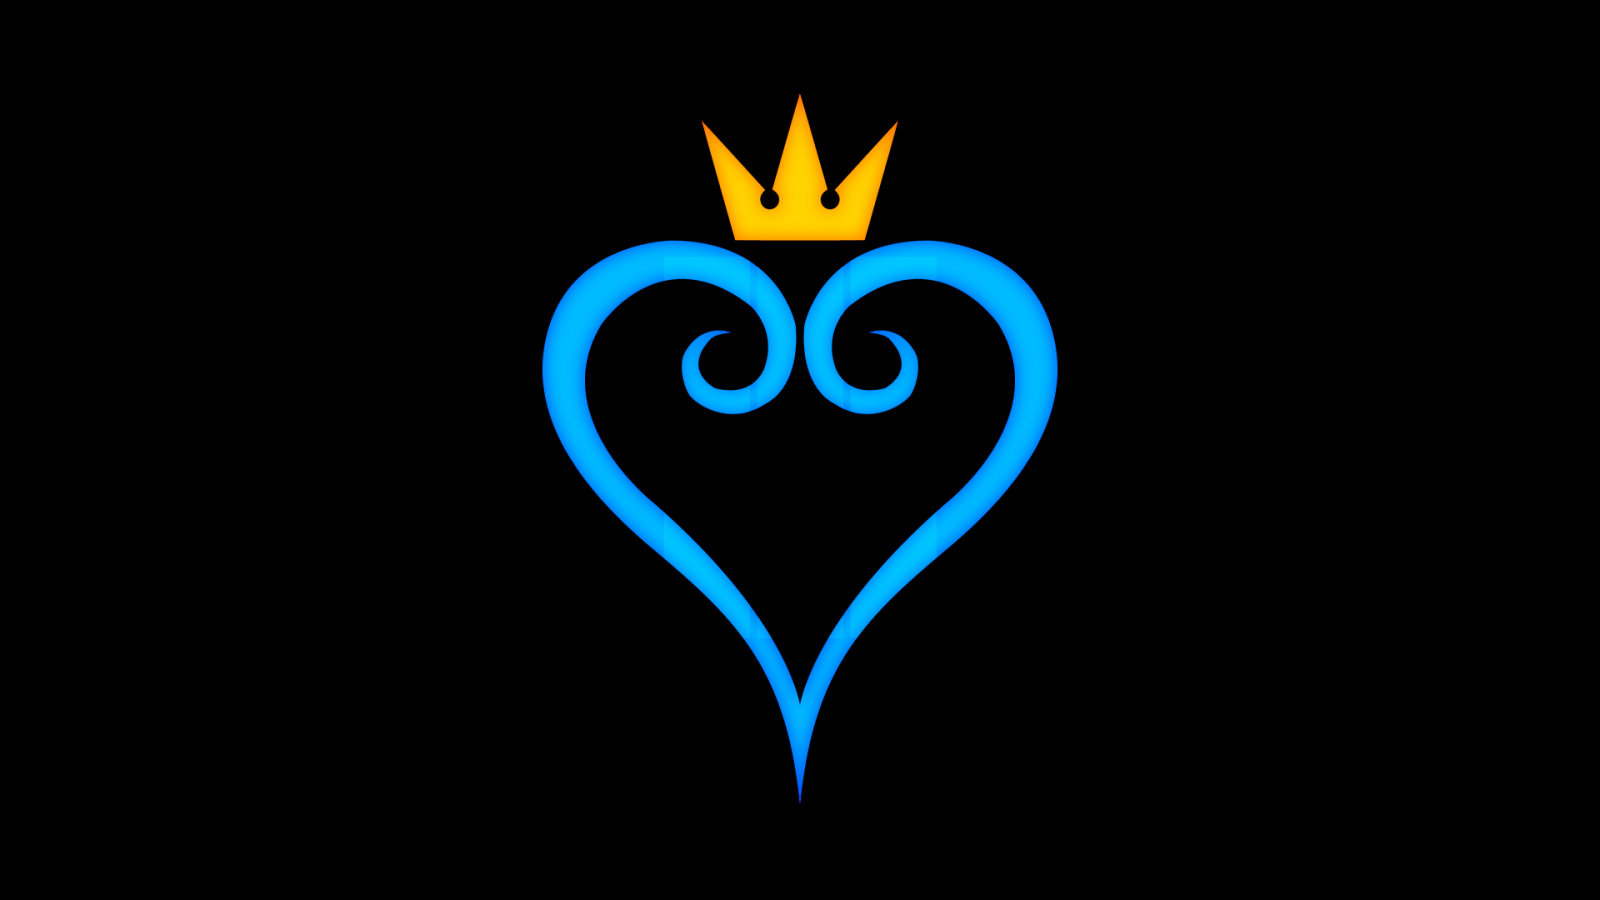 Download Kingdom Hearts Heart Black Logo Crown Disney Wallpaper Download 1600x900 Games Othe Kingdom Hearts Wallpaper Kingdom Hearts Logo Kingdom Hearts Tattoo Kingdom hearts had a different logo in the beta trailer showing the word kingdom in gold, bold letters on top of hearts in the same style as the current logo. kingdom hearts wallpaper